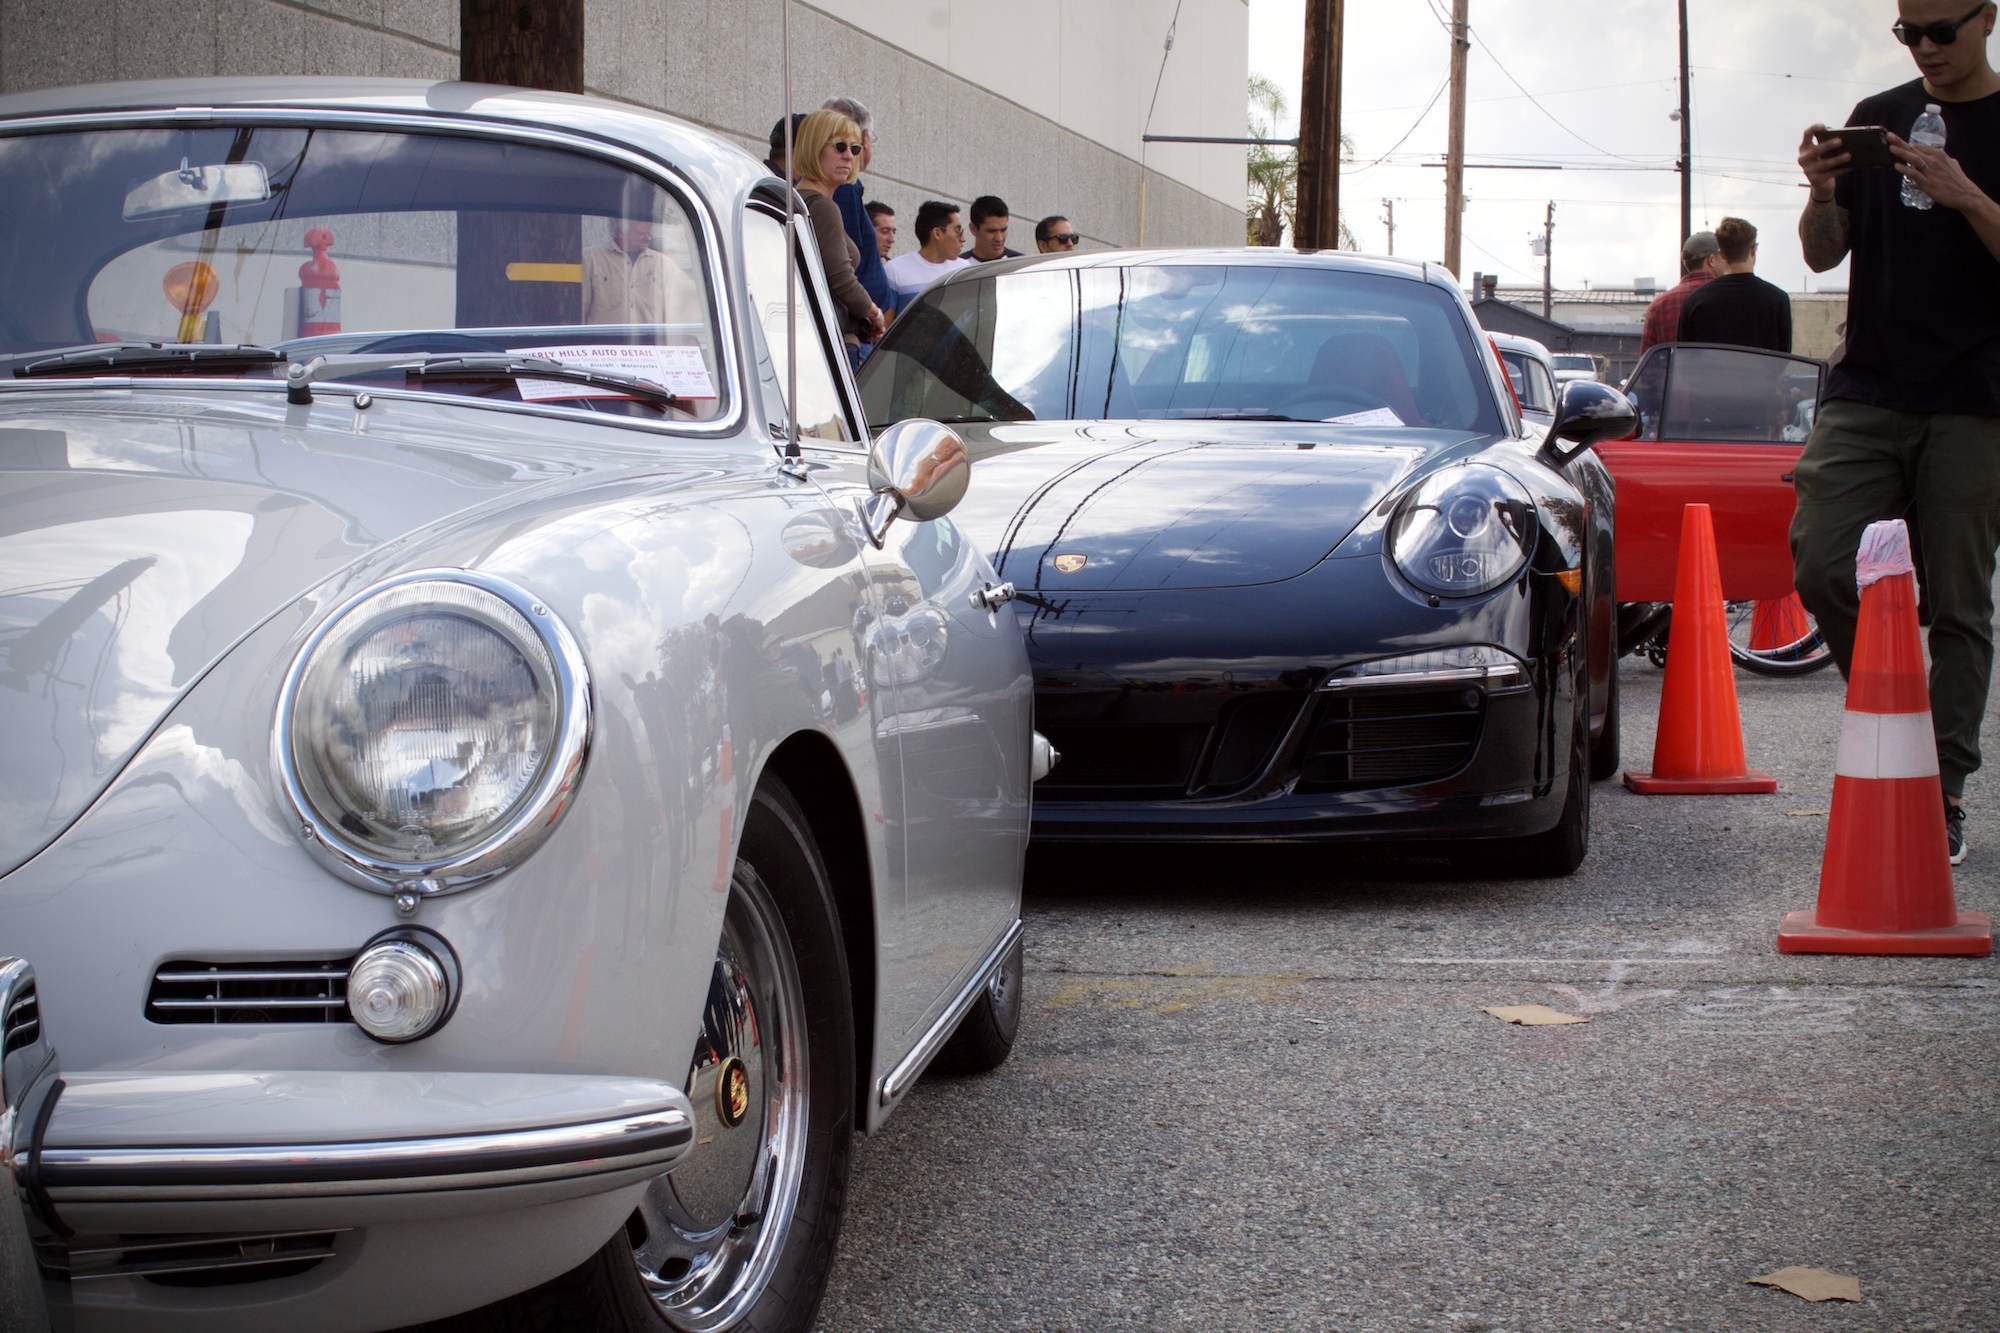 Old (356) meets new (991)